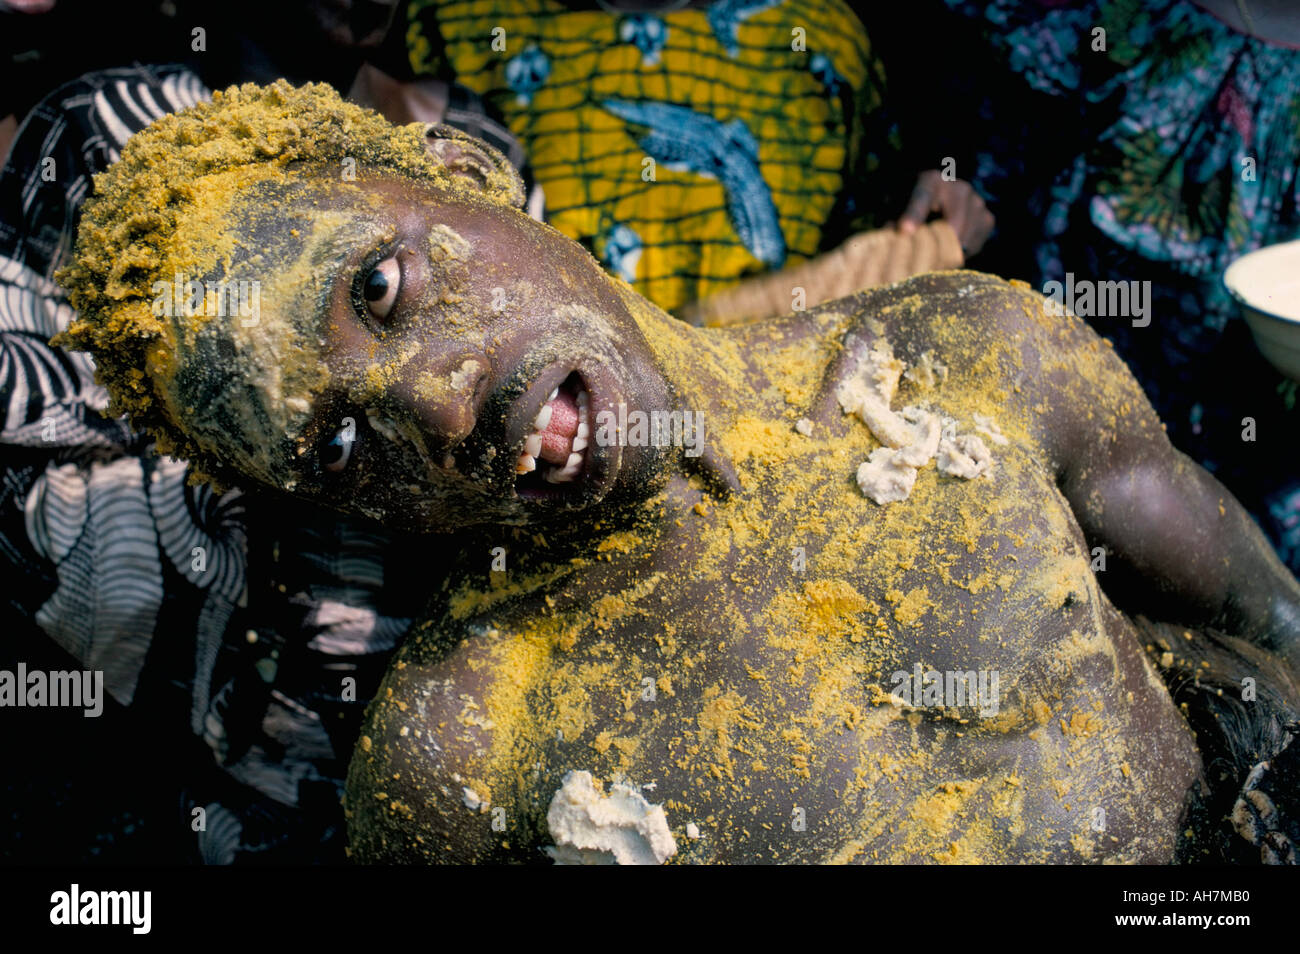 Man in trance during voodoo ceremony Abomey Benin Dahomey Africa - Stock Image